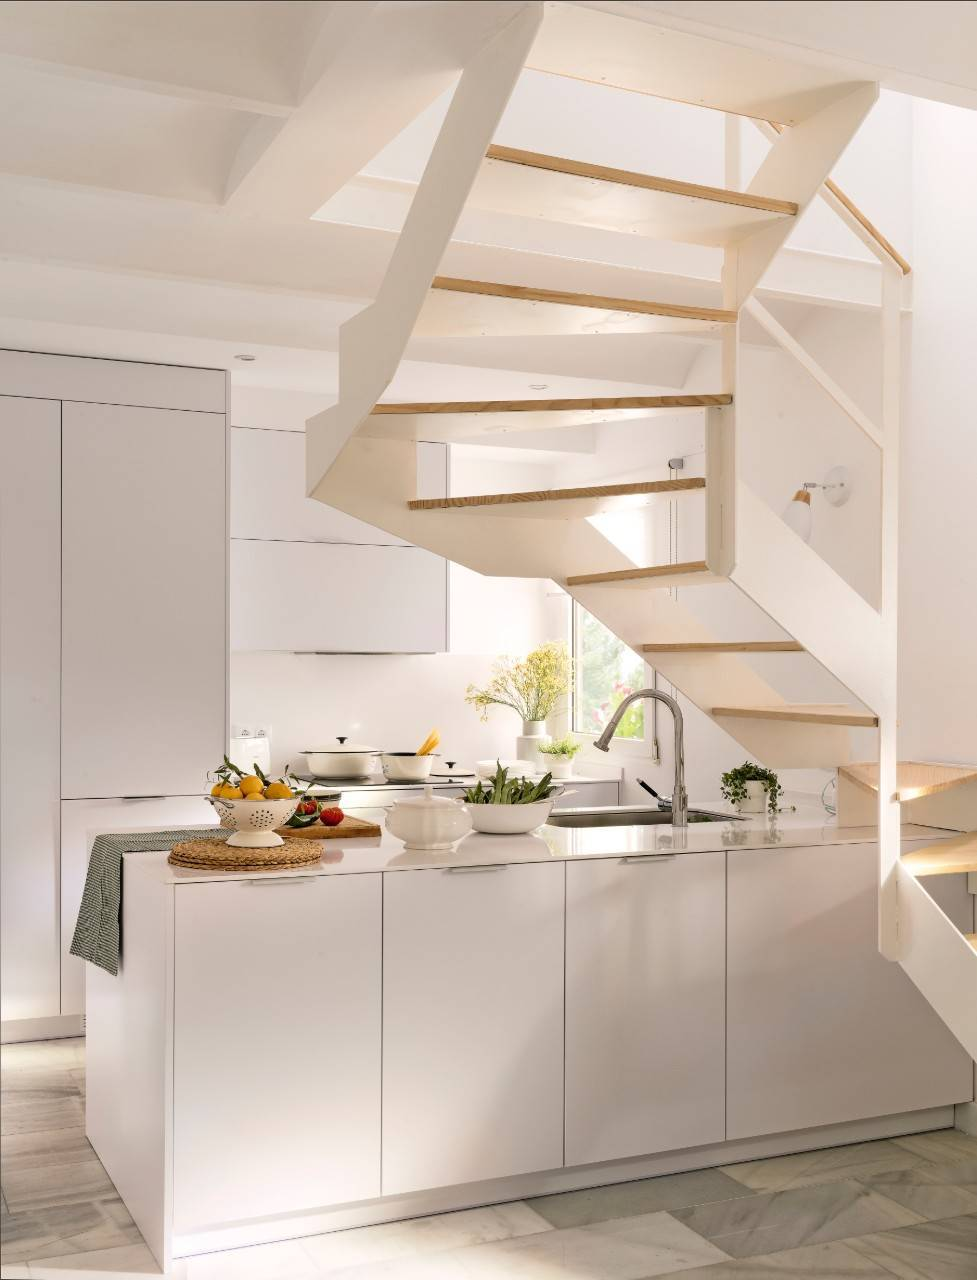 A MINI KITCHEN UNDER THE STAIRS